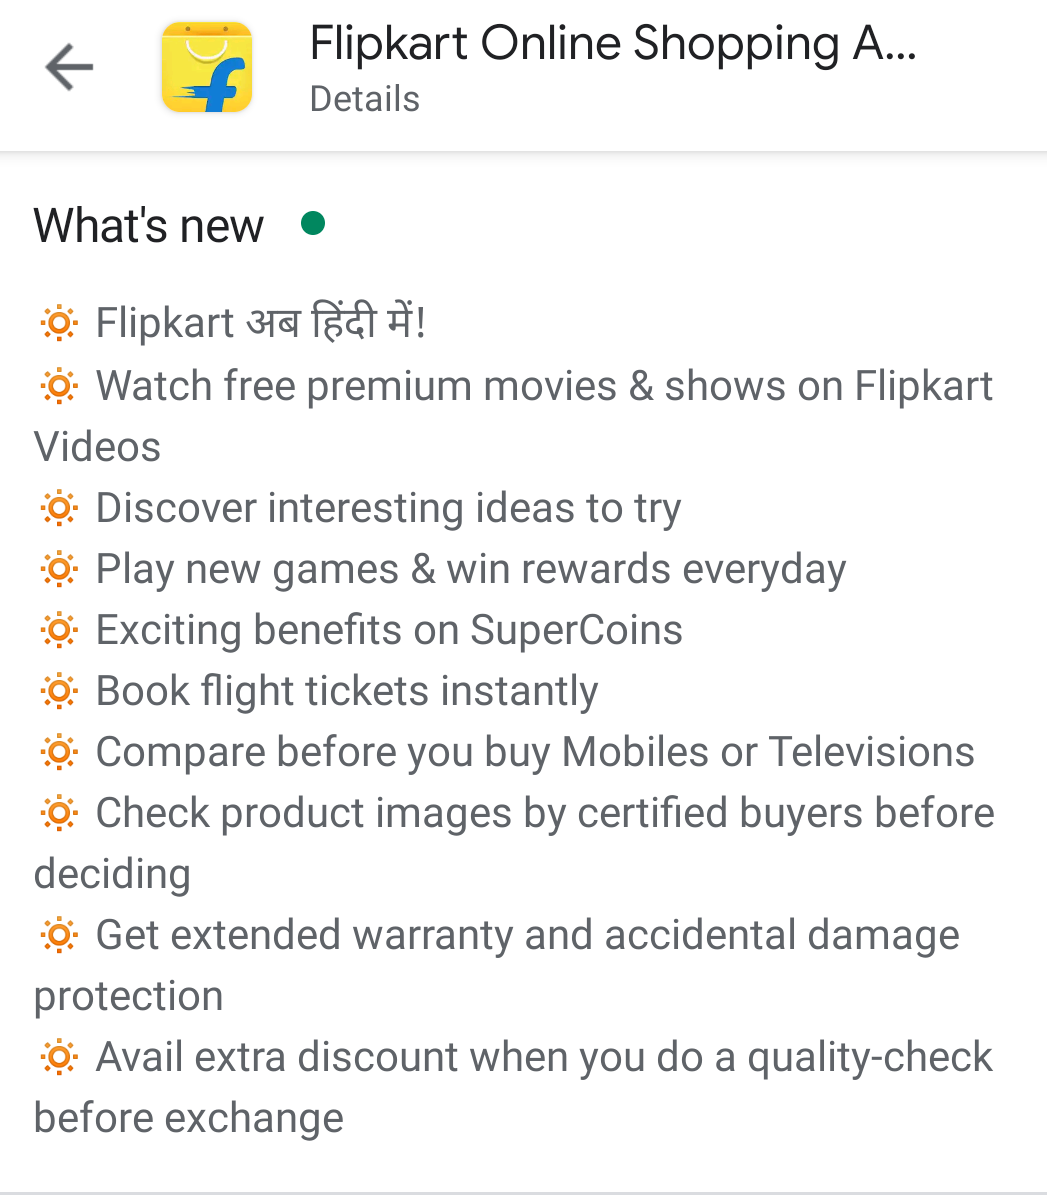 Flipkart Video Streaming service